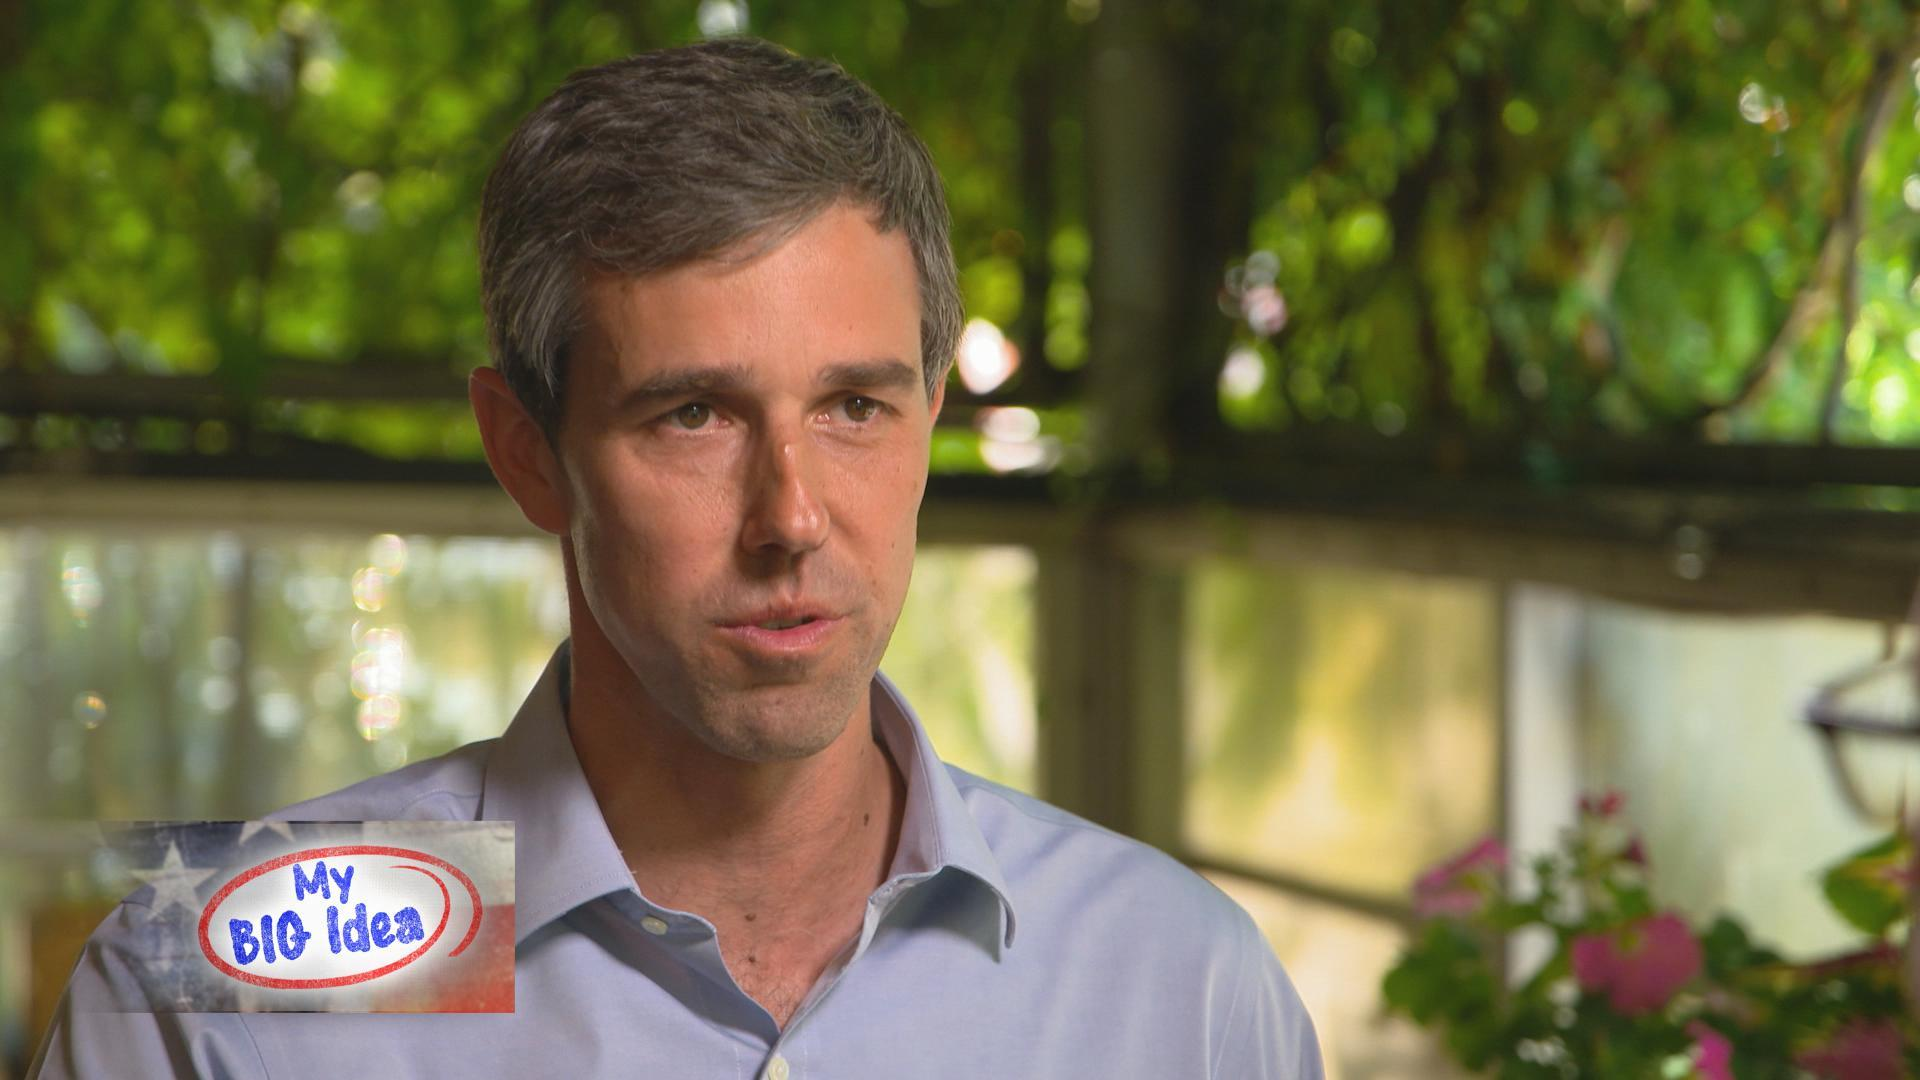 Beto O'Rourke's big idea: extended interview